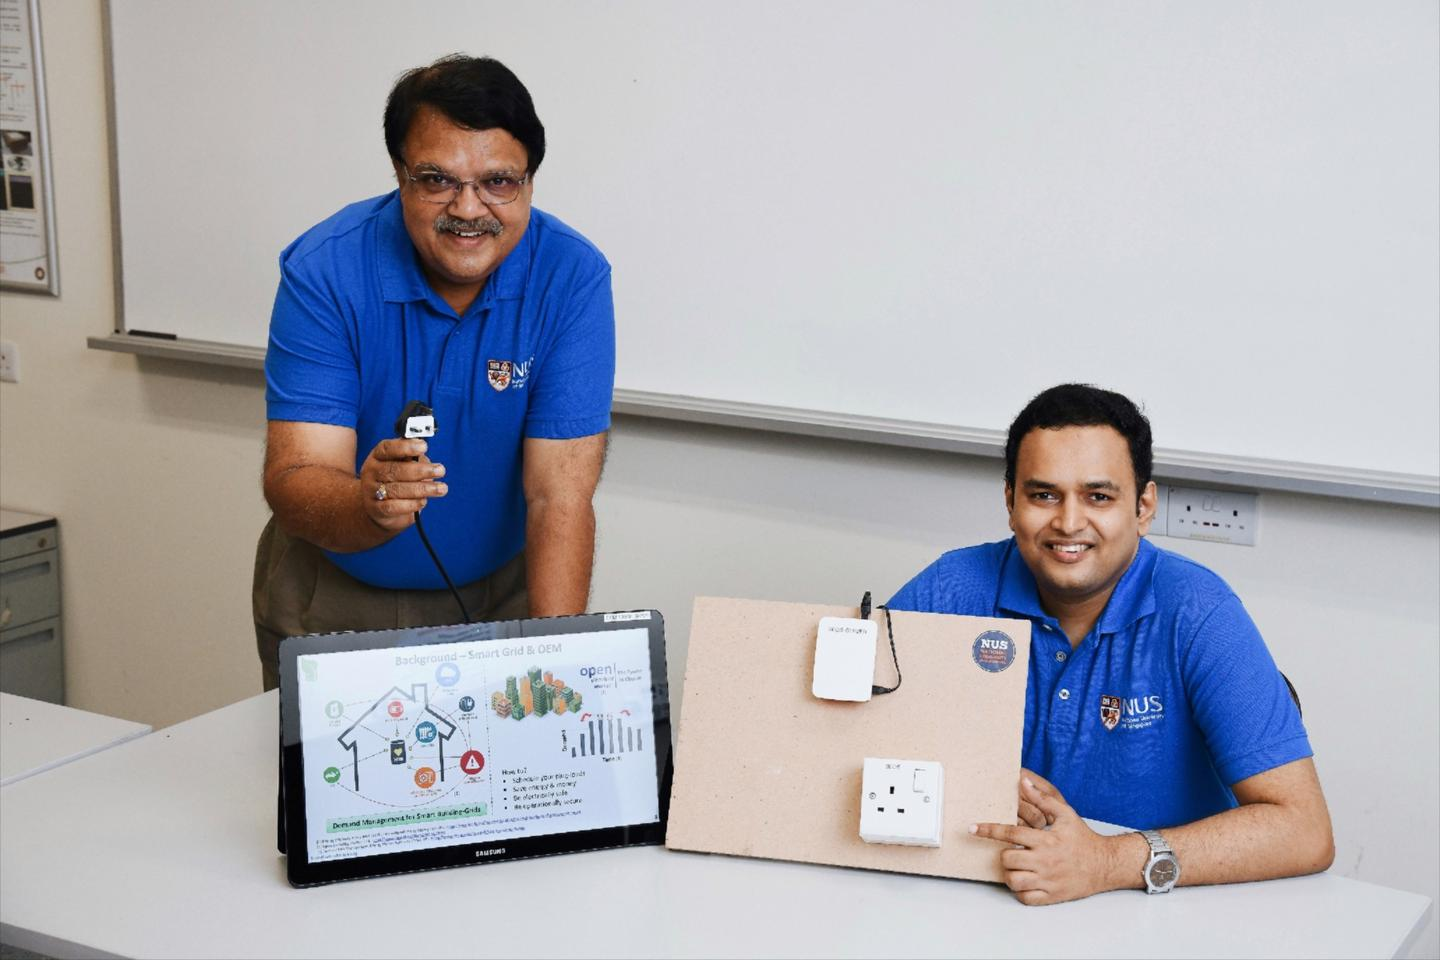 Assoc. Prof. Sanjib Kumar Panda (left) and Dr. Krishnanand Kaippilly Radhakrishnan with a prototype of the Smart Electrical Outlet/Socket (SEOS) system